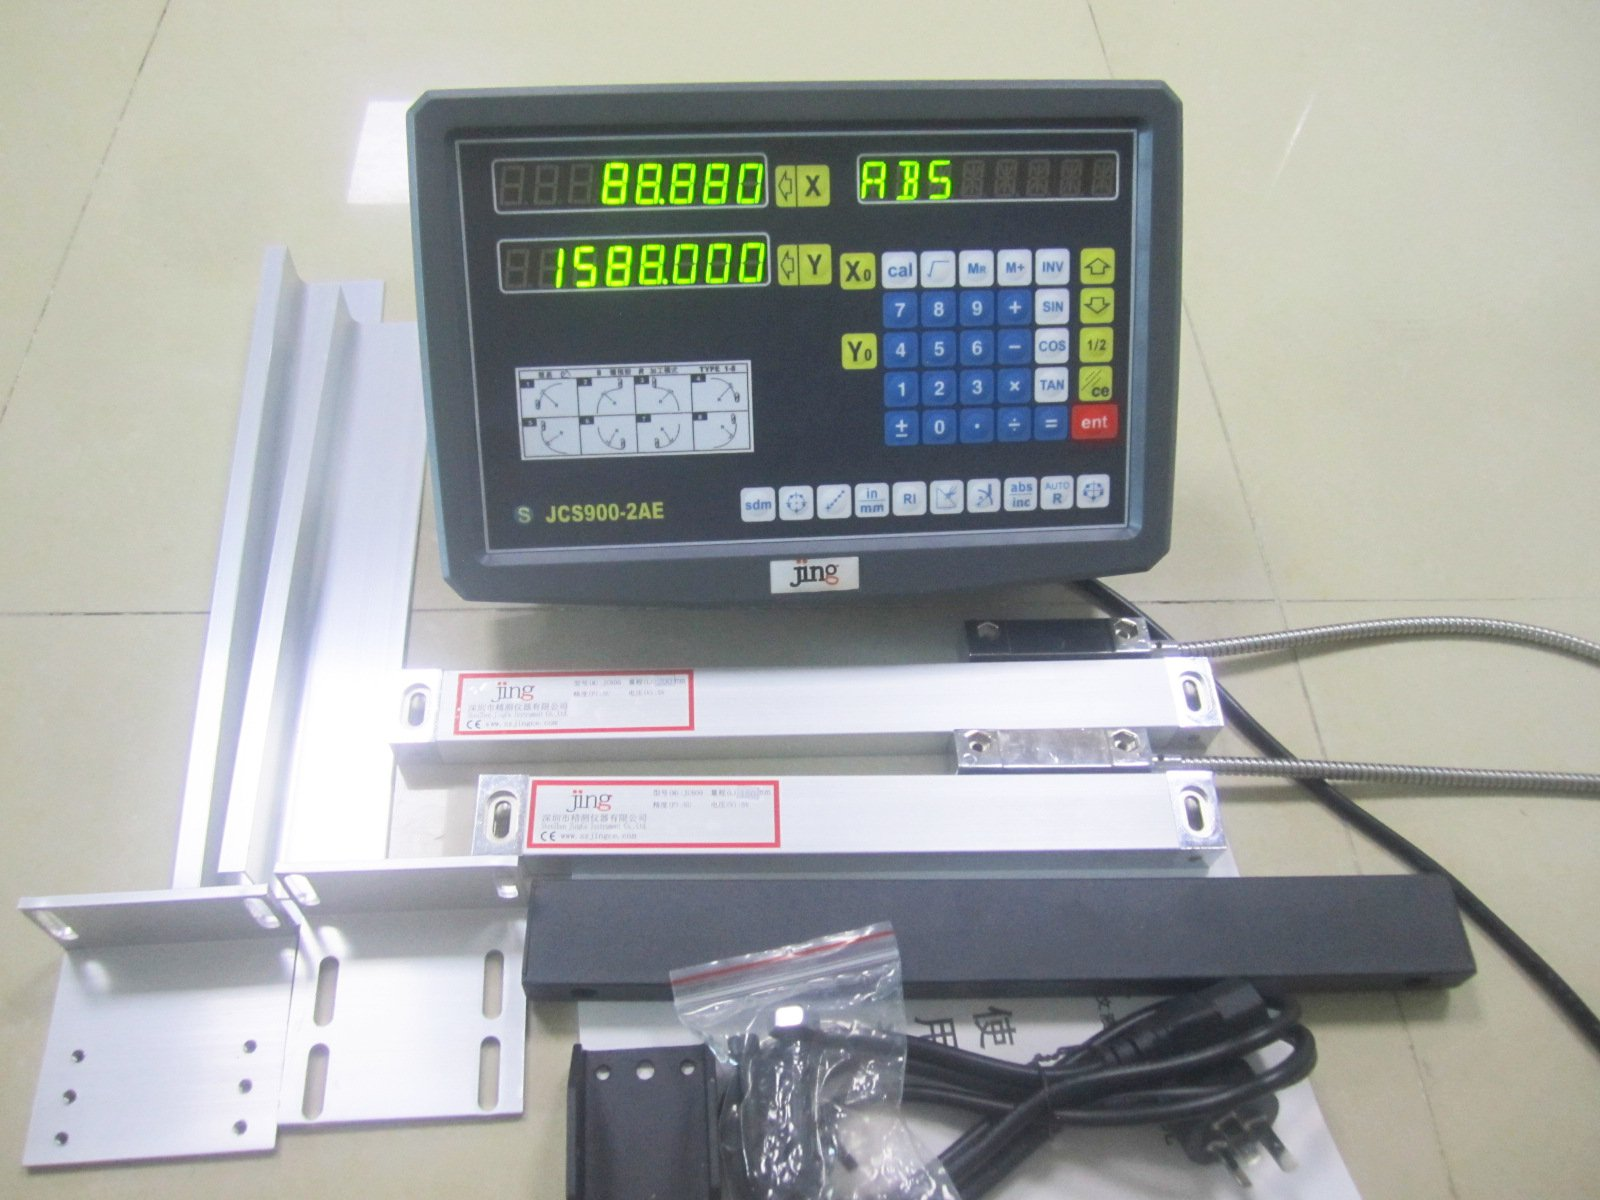 2 Axis DRO Digital Readout for Milling Lathe Machine with Precision Linear Scale 250 1000